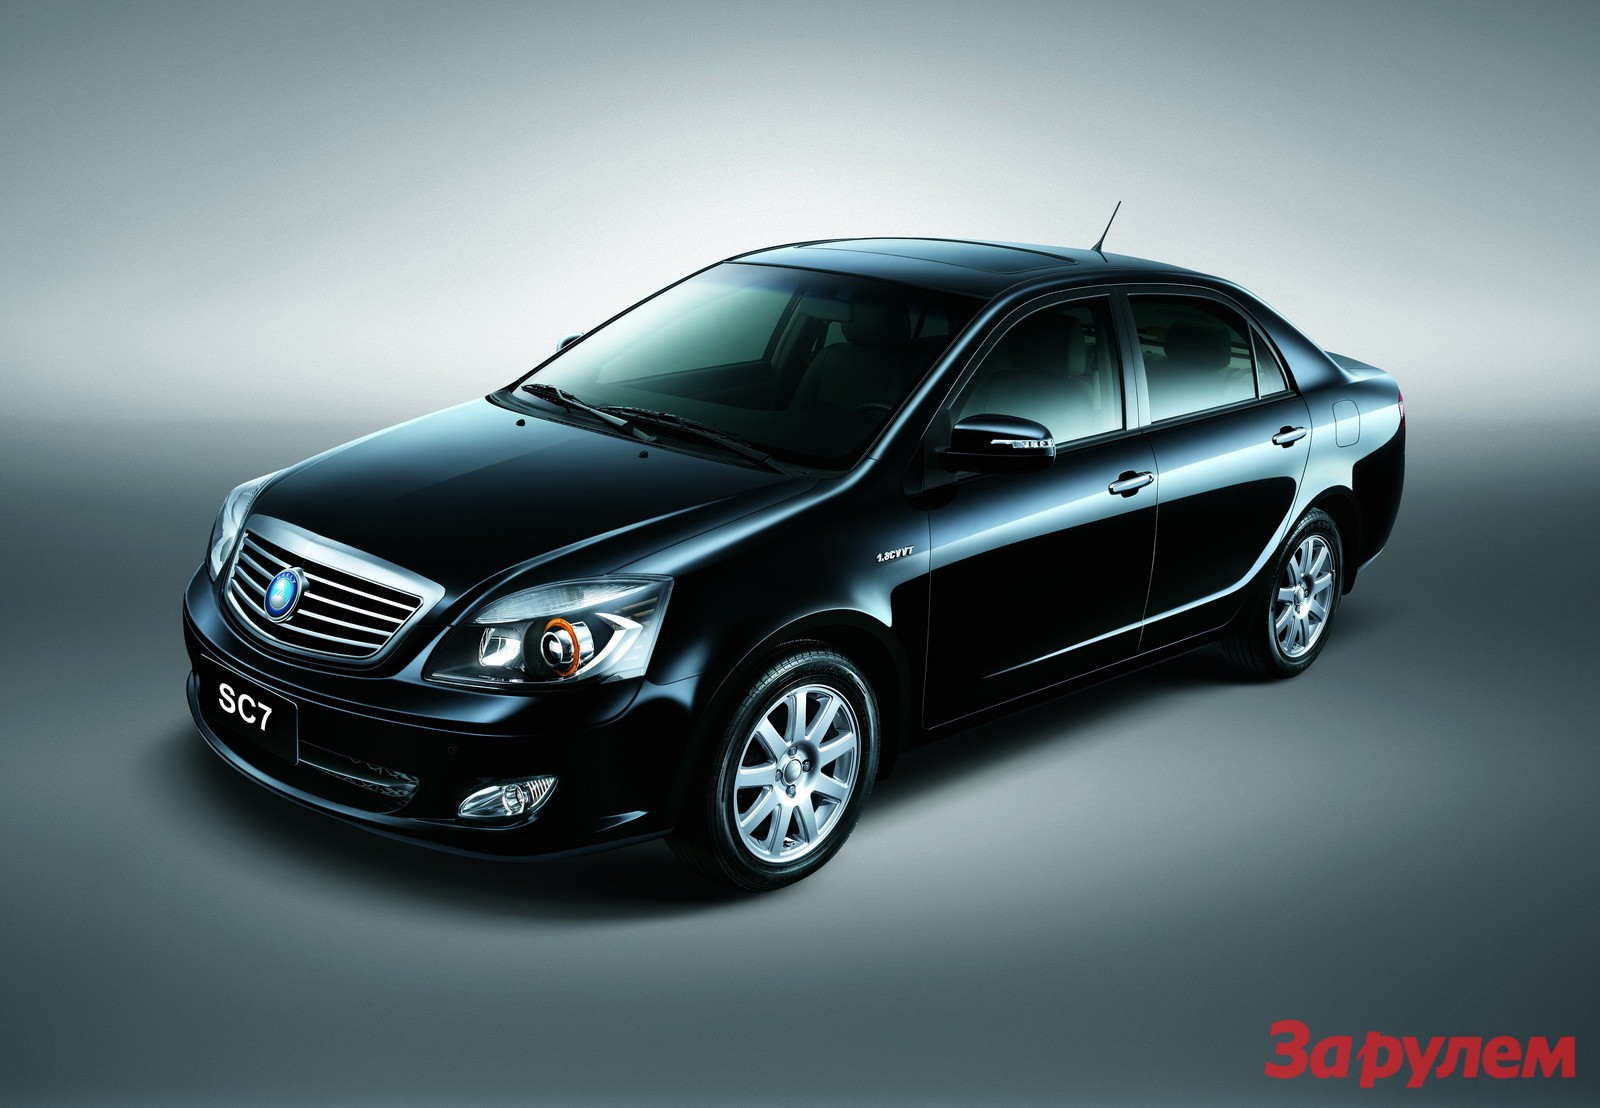 Pictures of geely sc 7